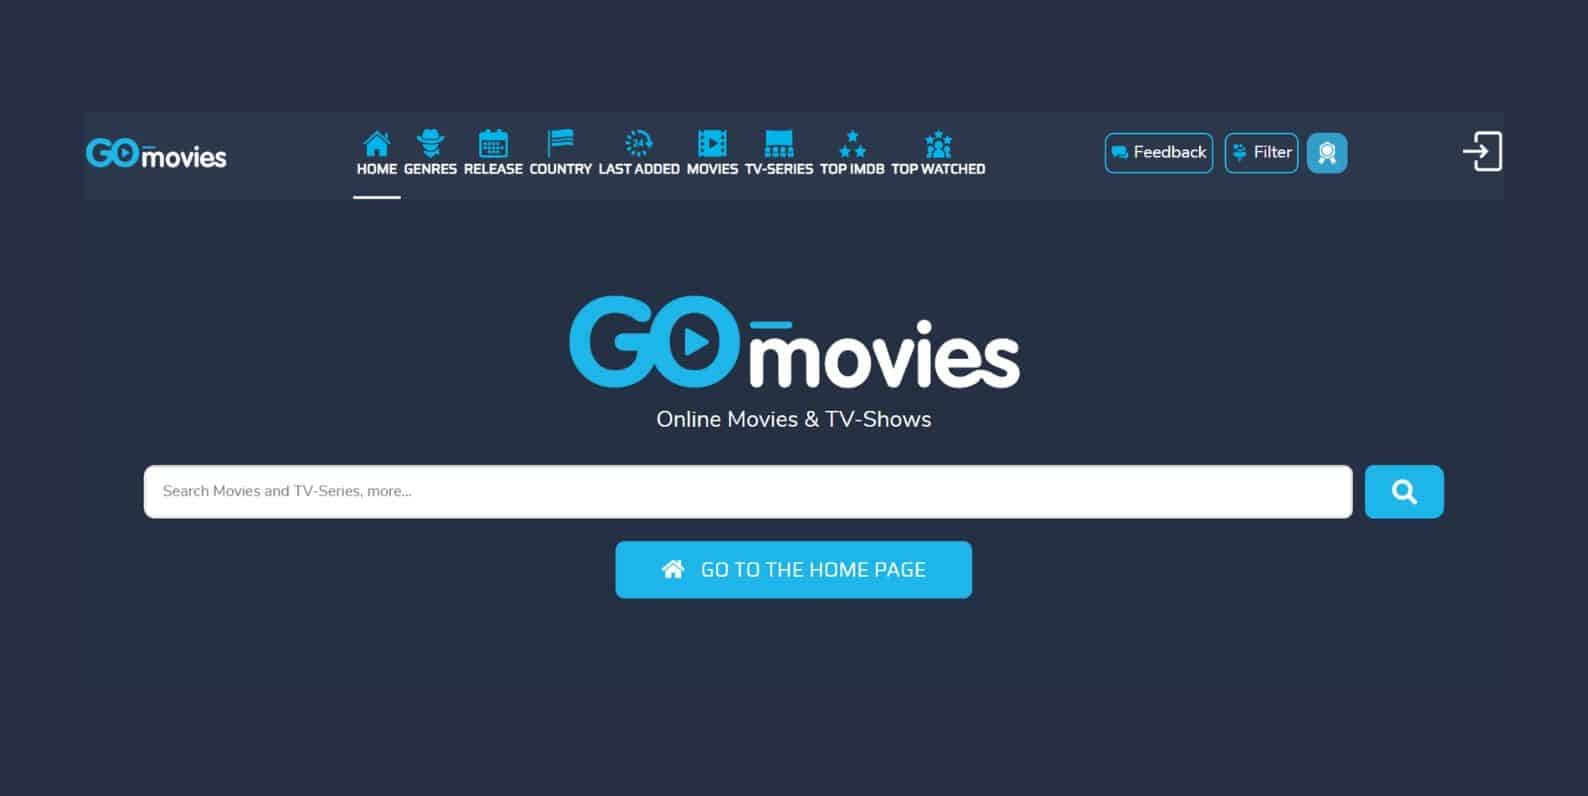 Go Movies, a similar site to 123Movies